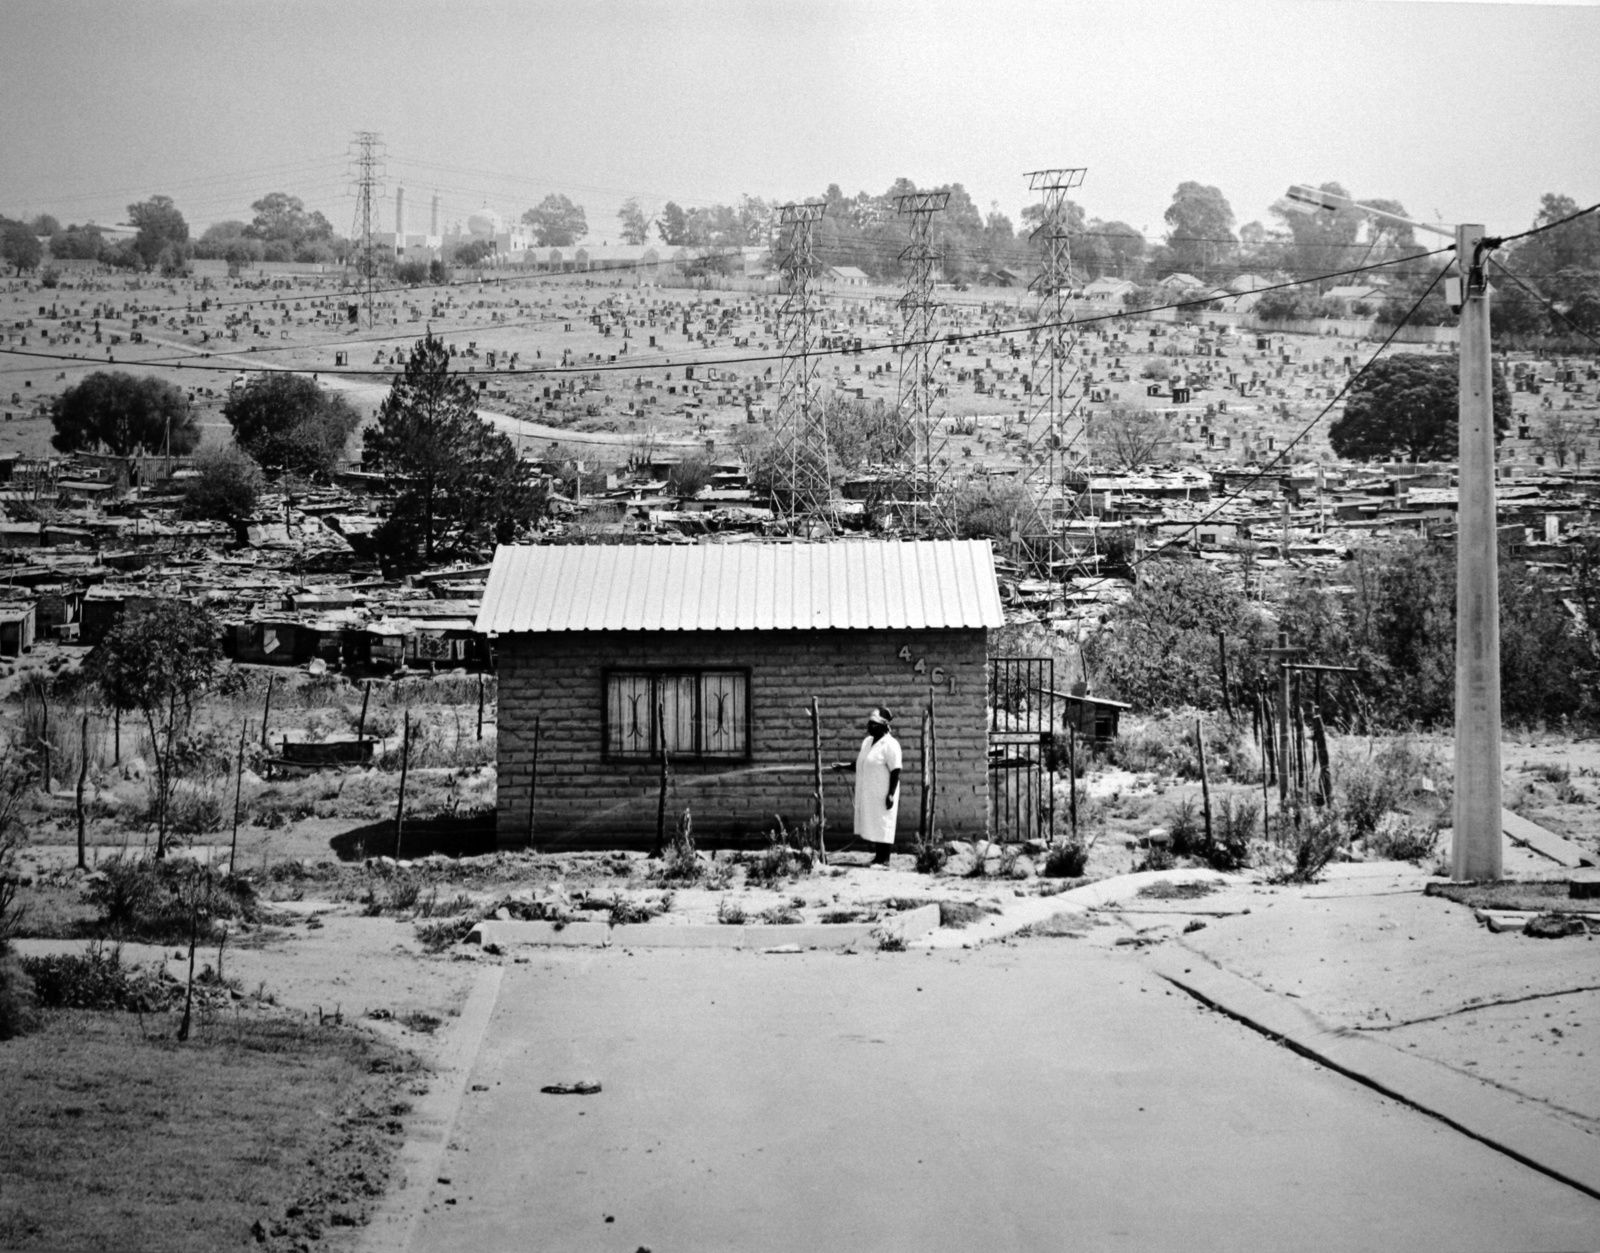 """Miriam Mazibuko waters the garden of her RDP house for which she waited eight years. Extension 8, FarEast Alexandra Township"", 12/09/2006 David Goldblatt. Courtesy of the artist and Marian Goodman Gallery, Paris"